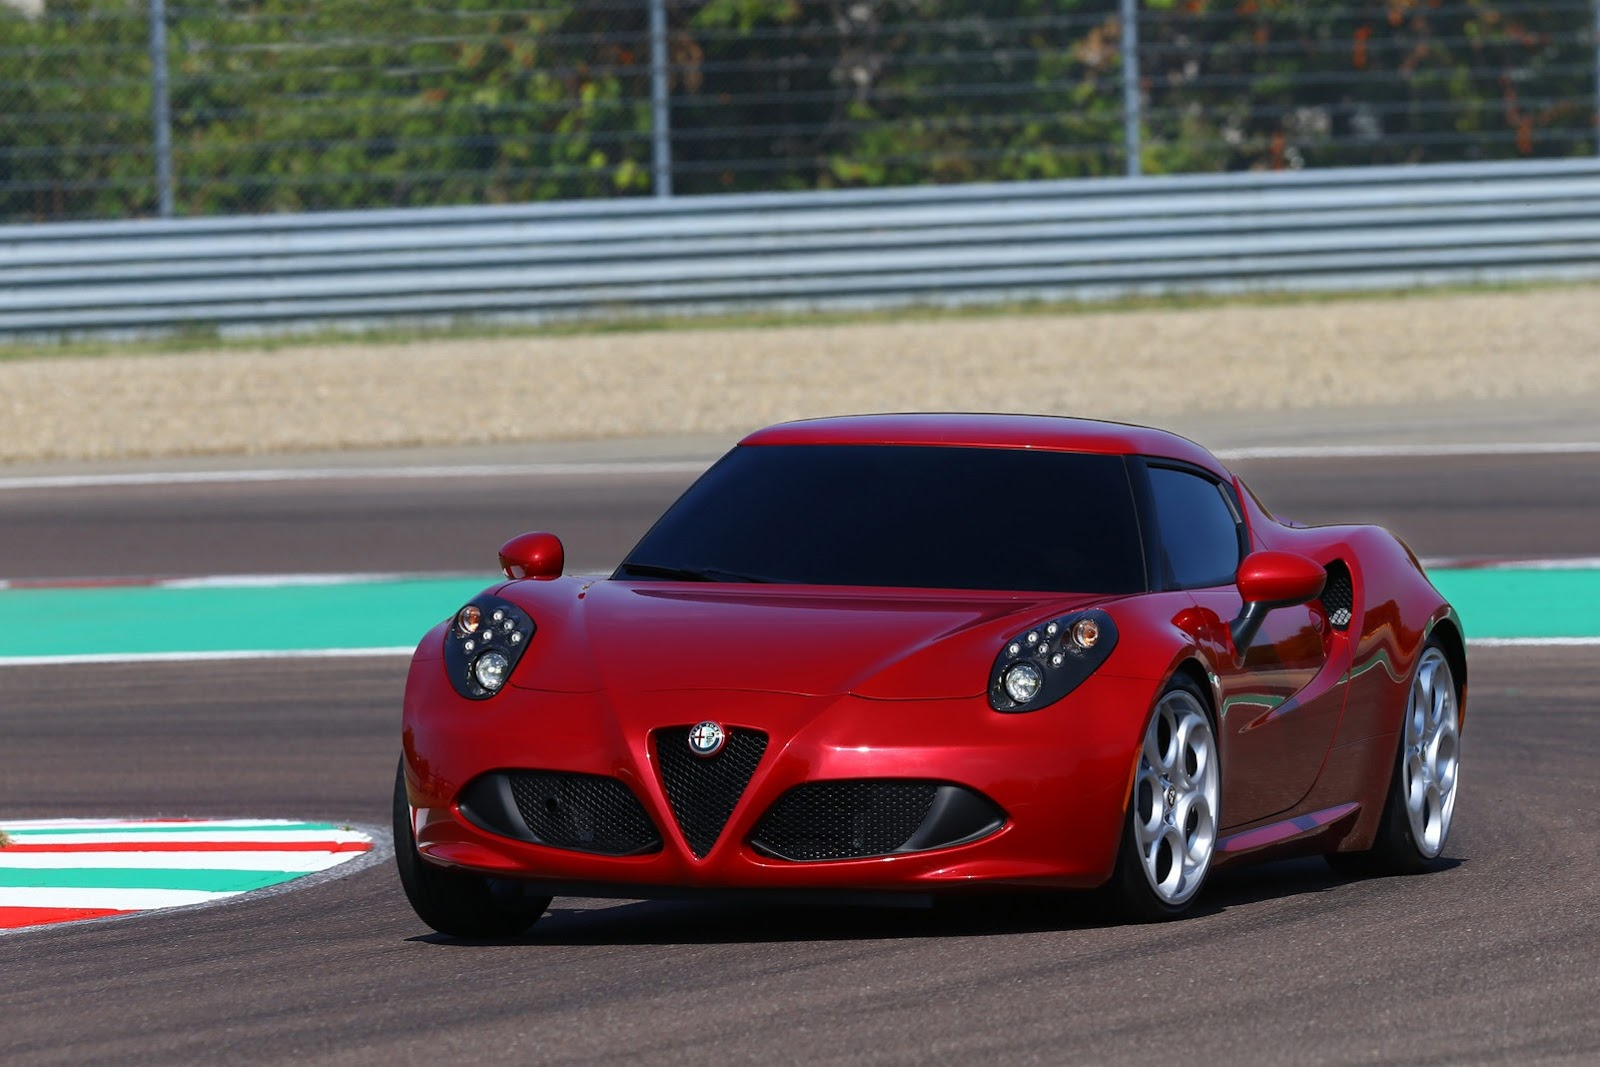 alfa romeo 4c sports car launches pictures and details video. Black Bedroom Furniture Sets. Home Design Ideas